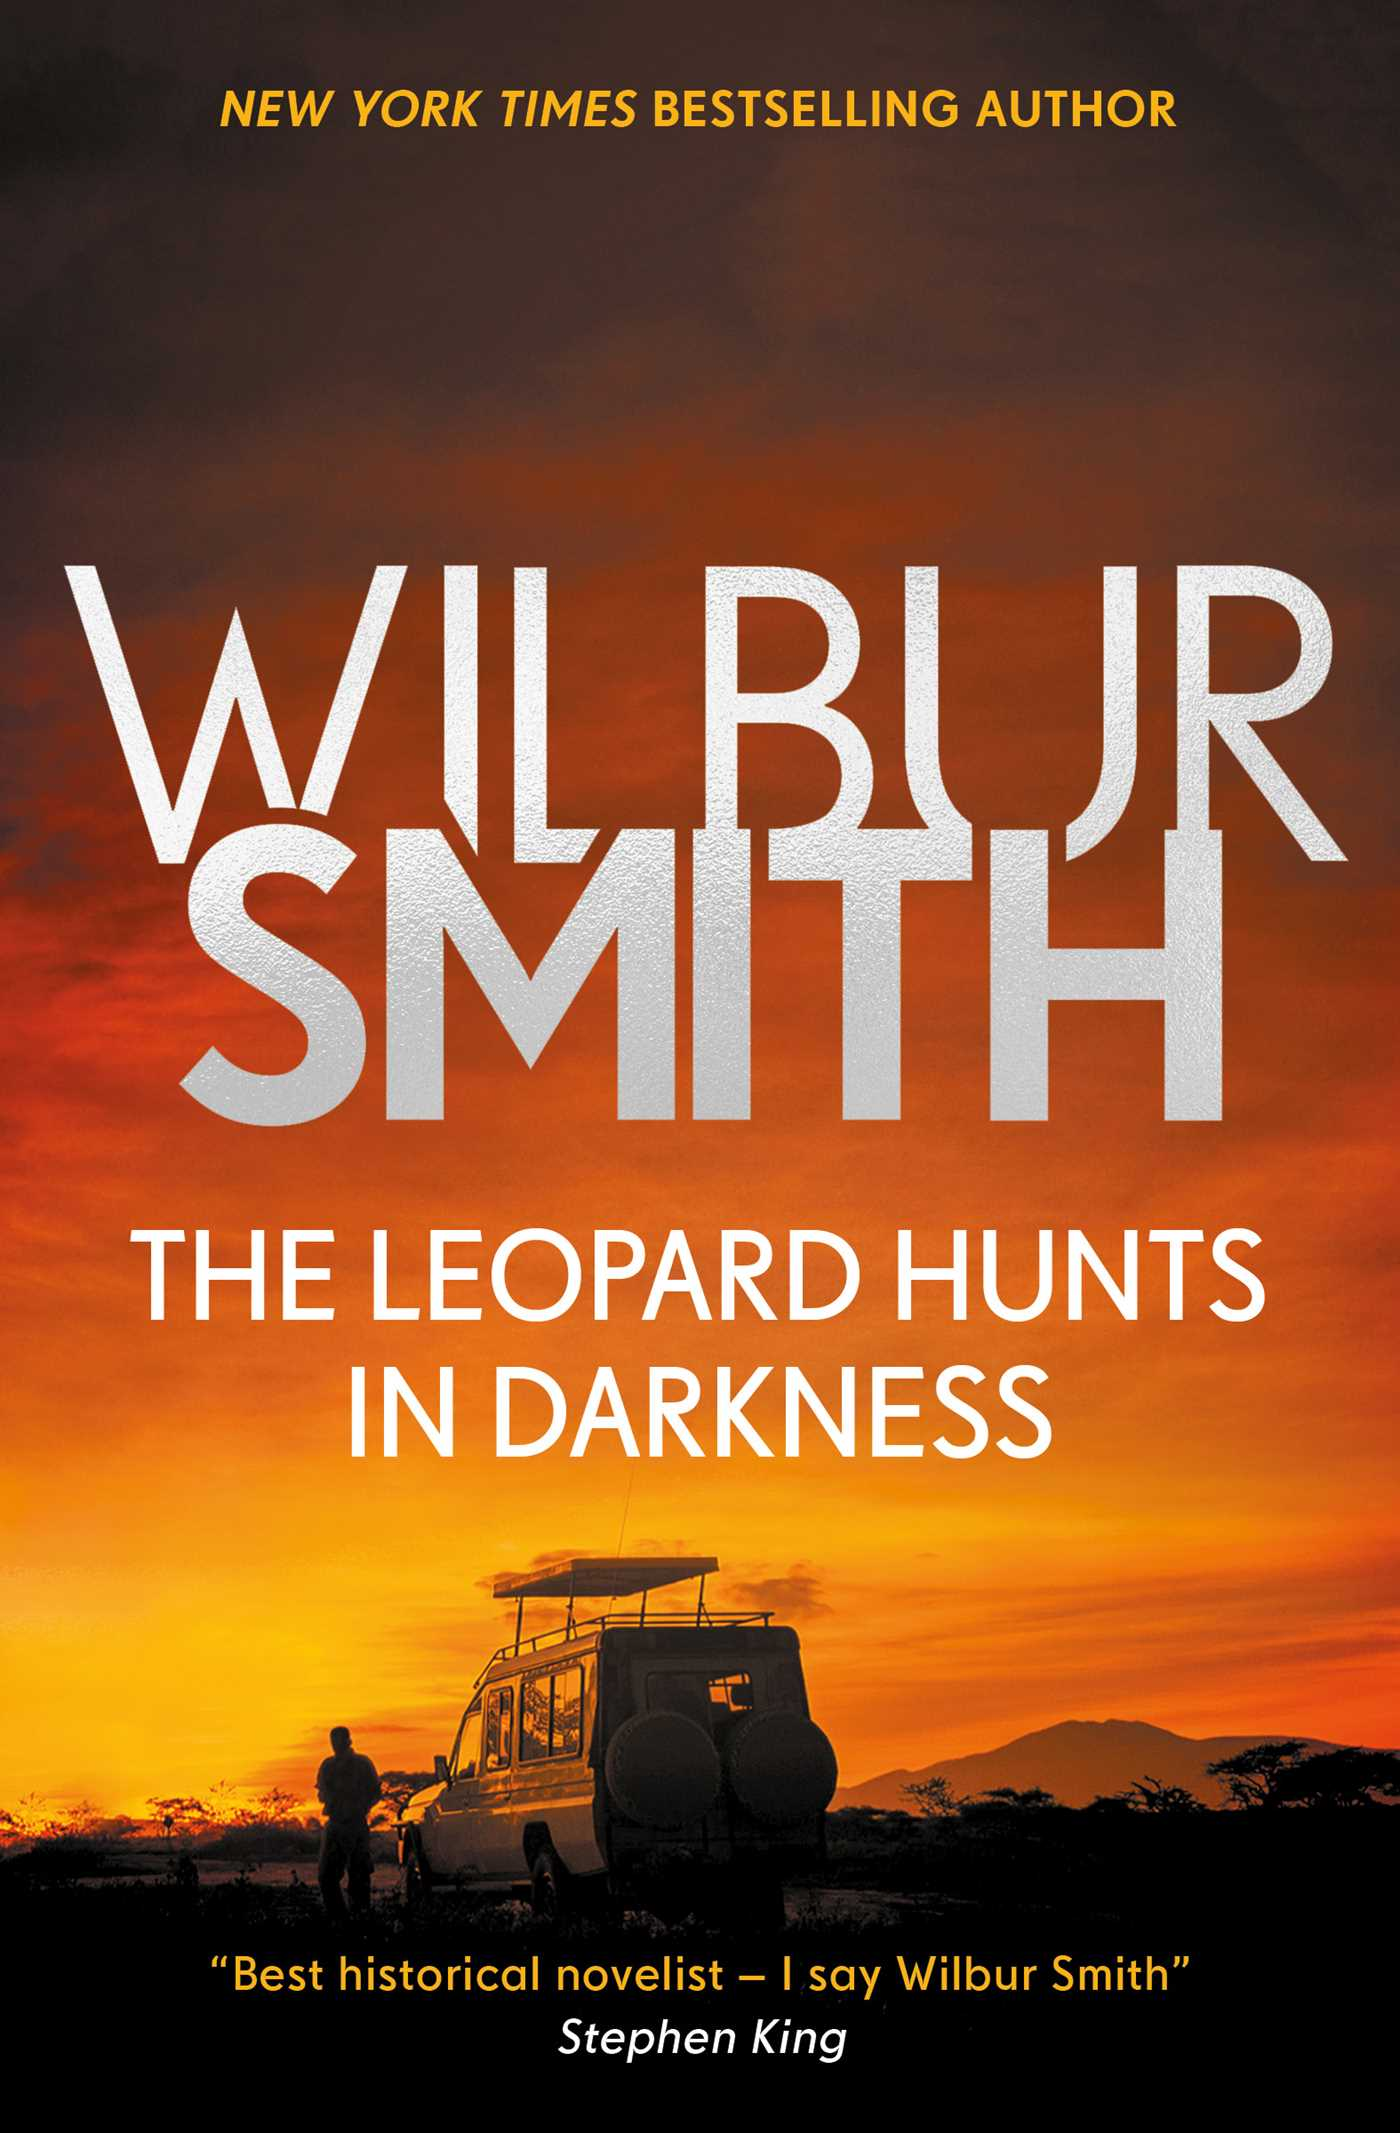 The leopard hunts in darkness 9781499860641 hr